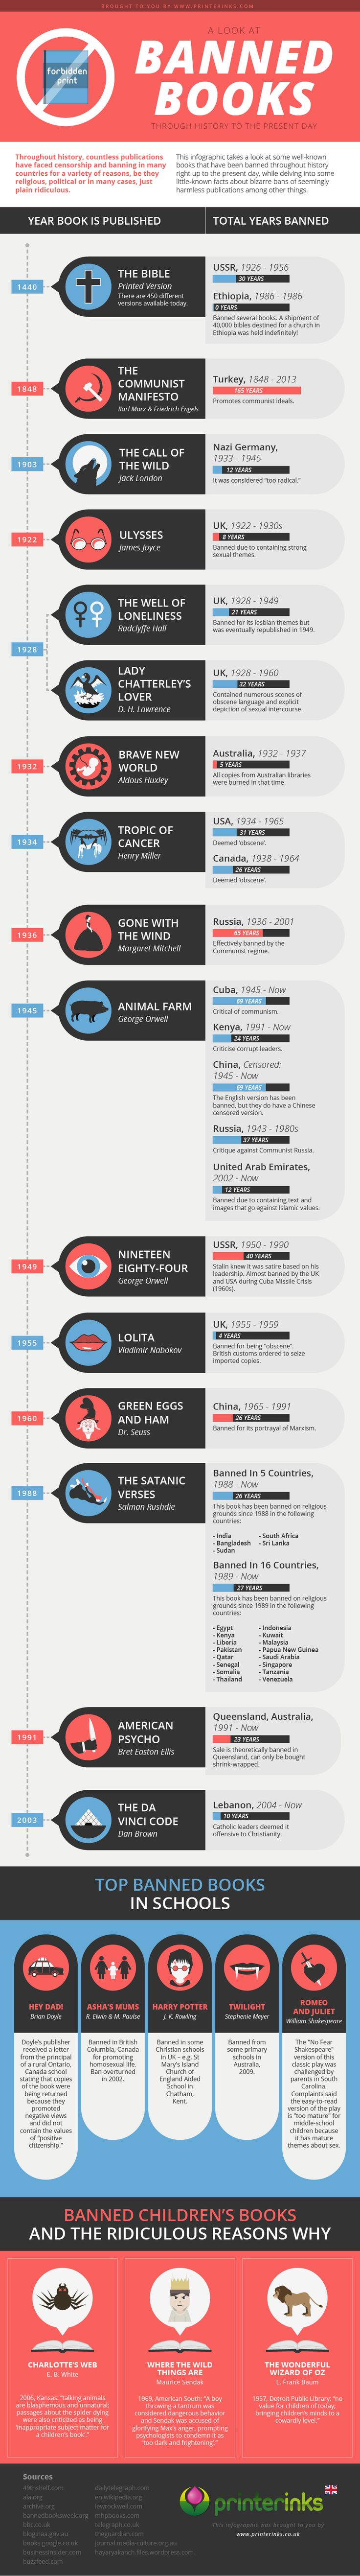 Infographic of the history of Banned Books   http://www.bannedlibrary.com/blog/2015/3/20/banned-books-infographic-charts-history-of-hella-evil-censorship